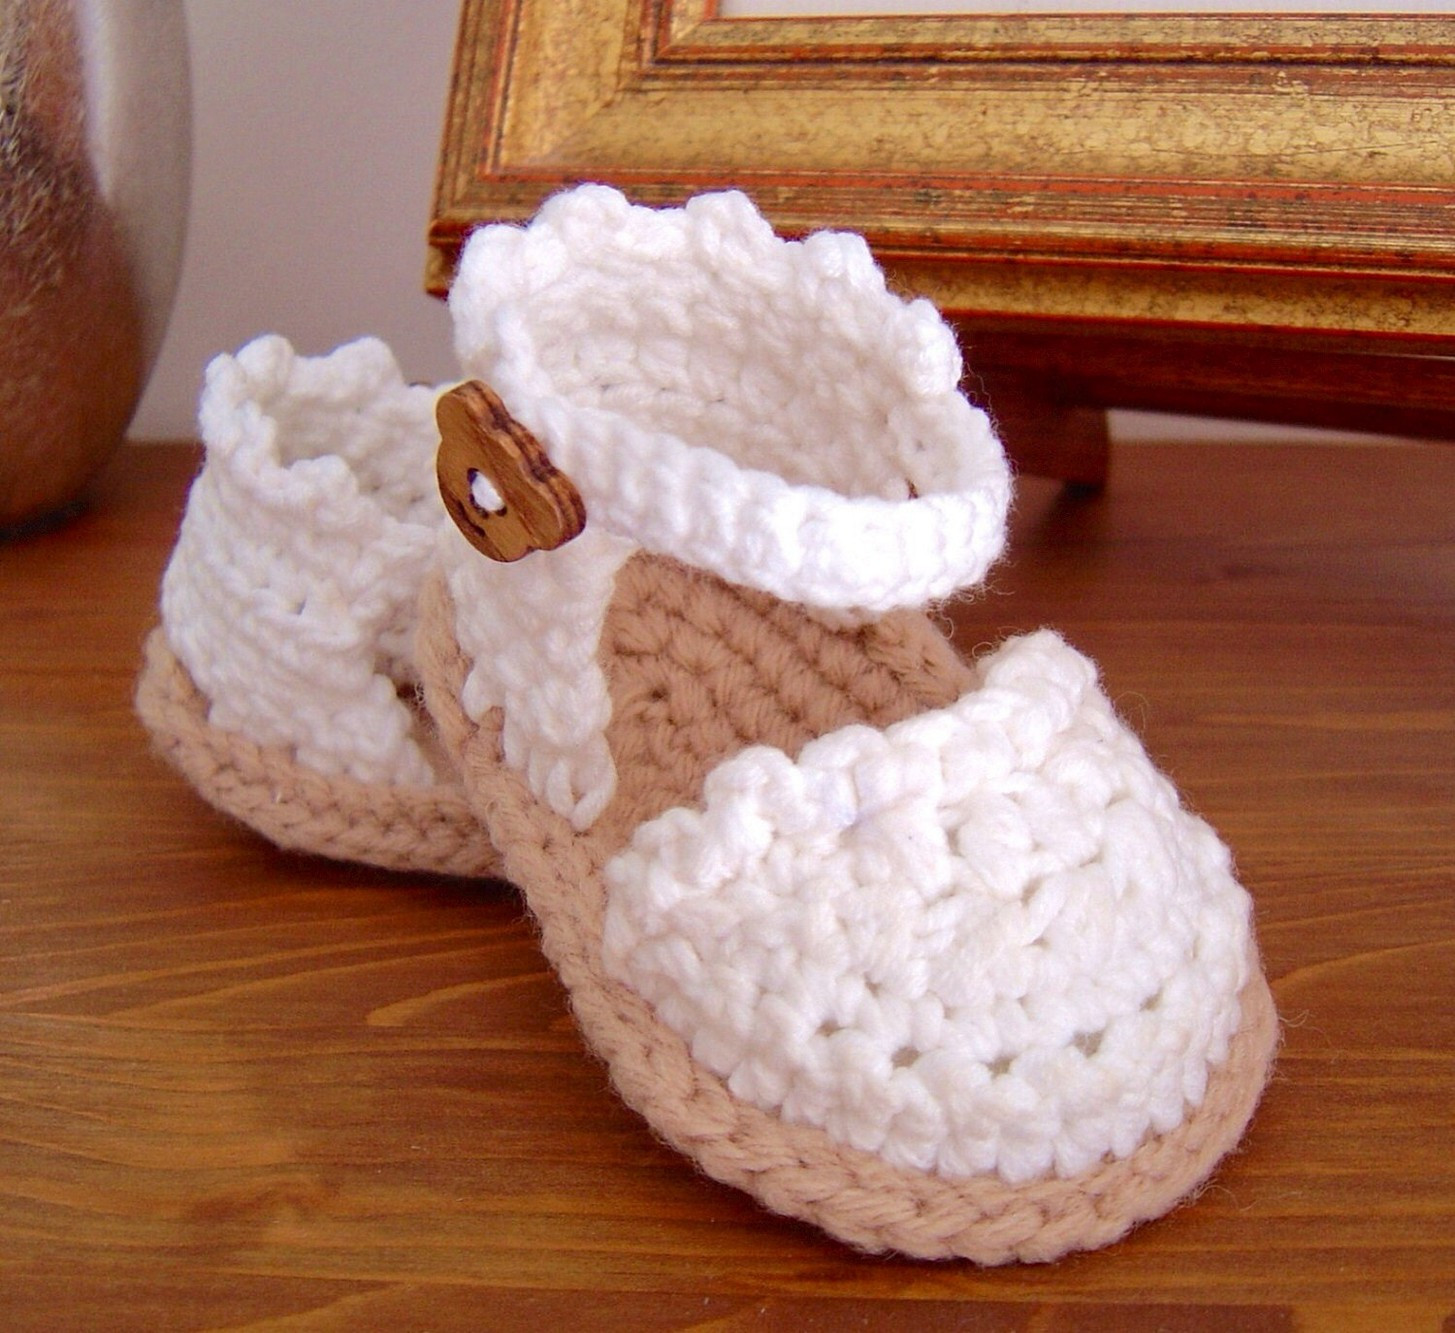 Elegant Baby Crochet Sandals Several Pieces Of Ideas You Can Try Crochet for Baby Of New 46 Pictures Crochet for Baby